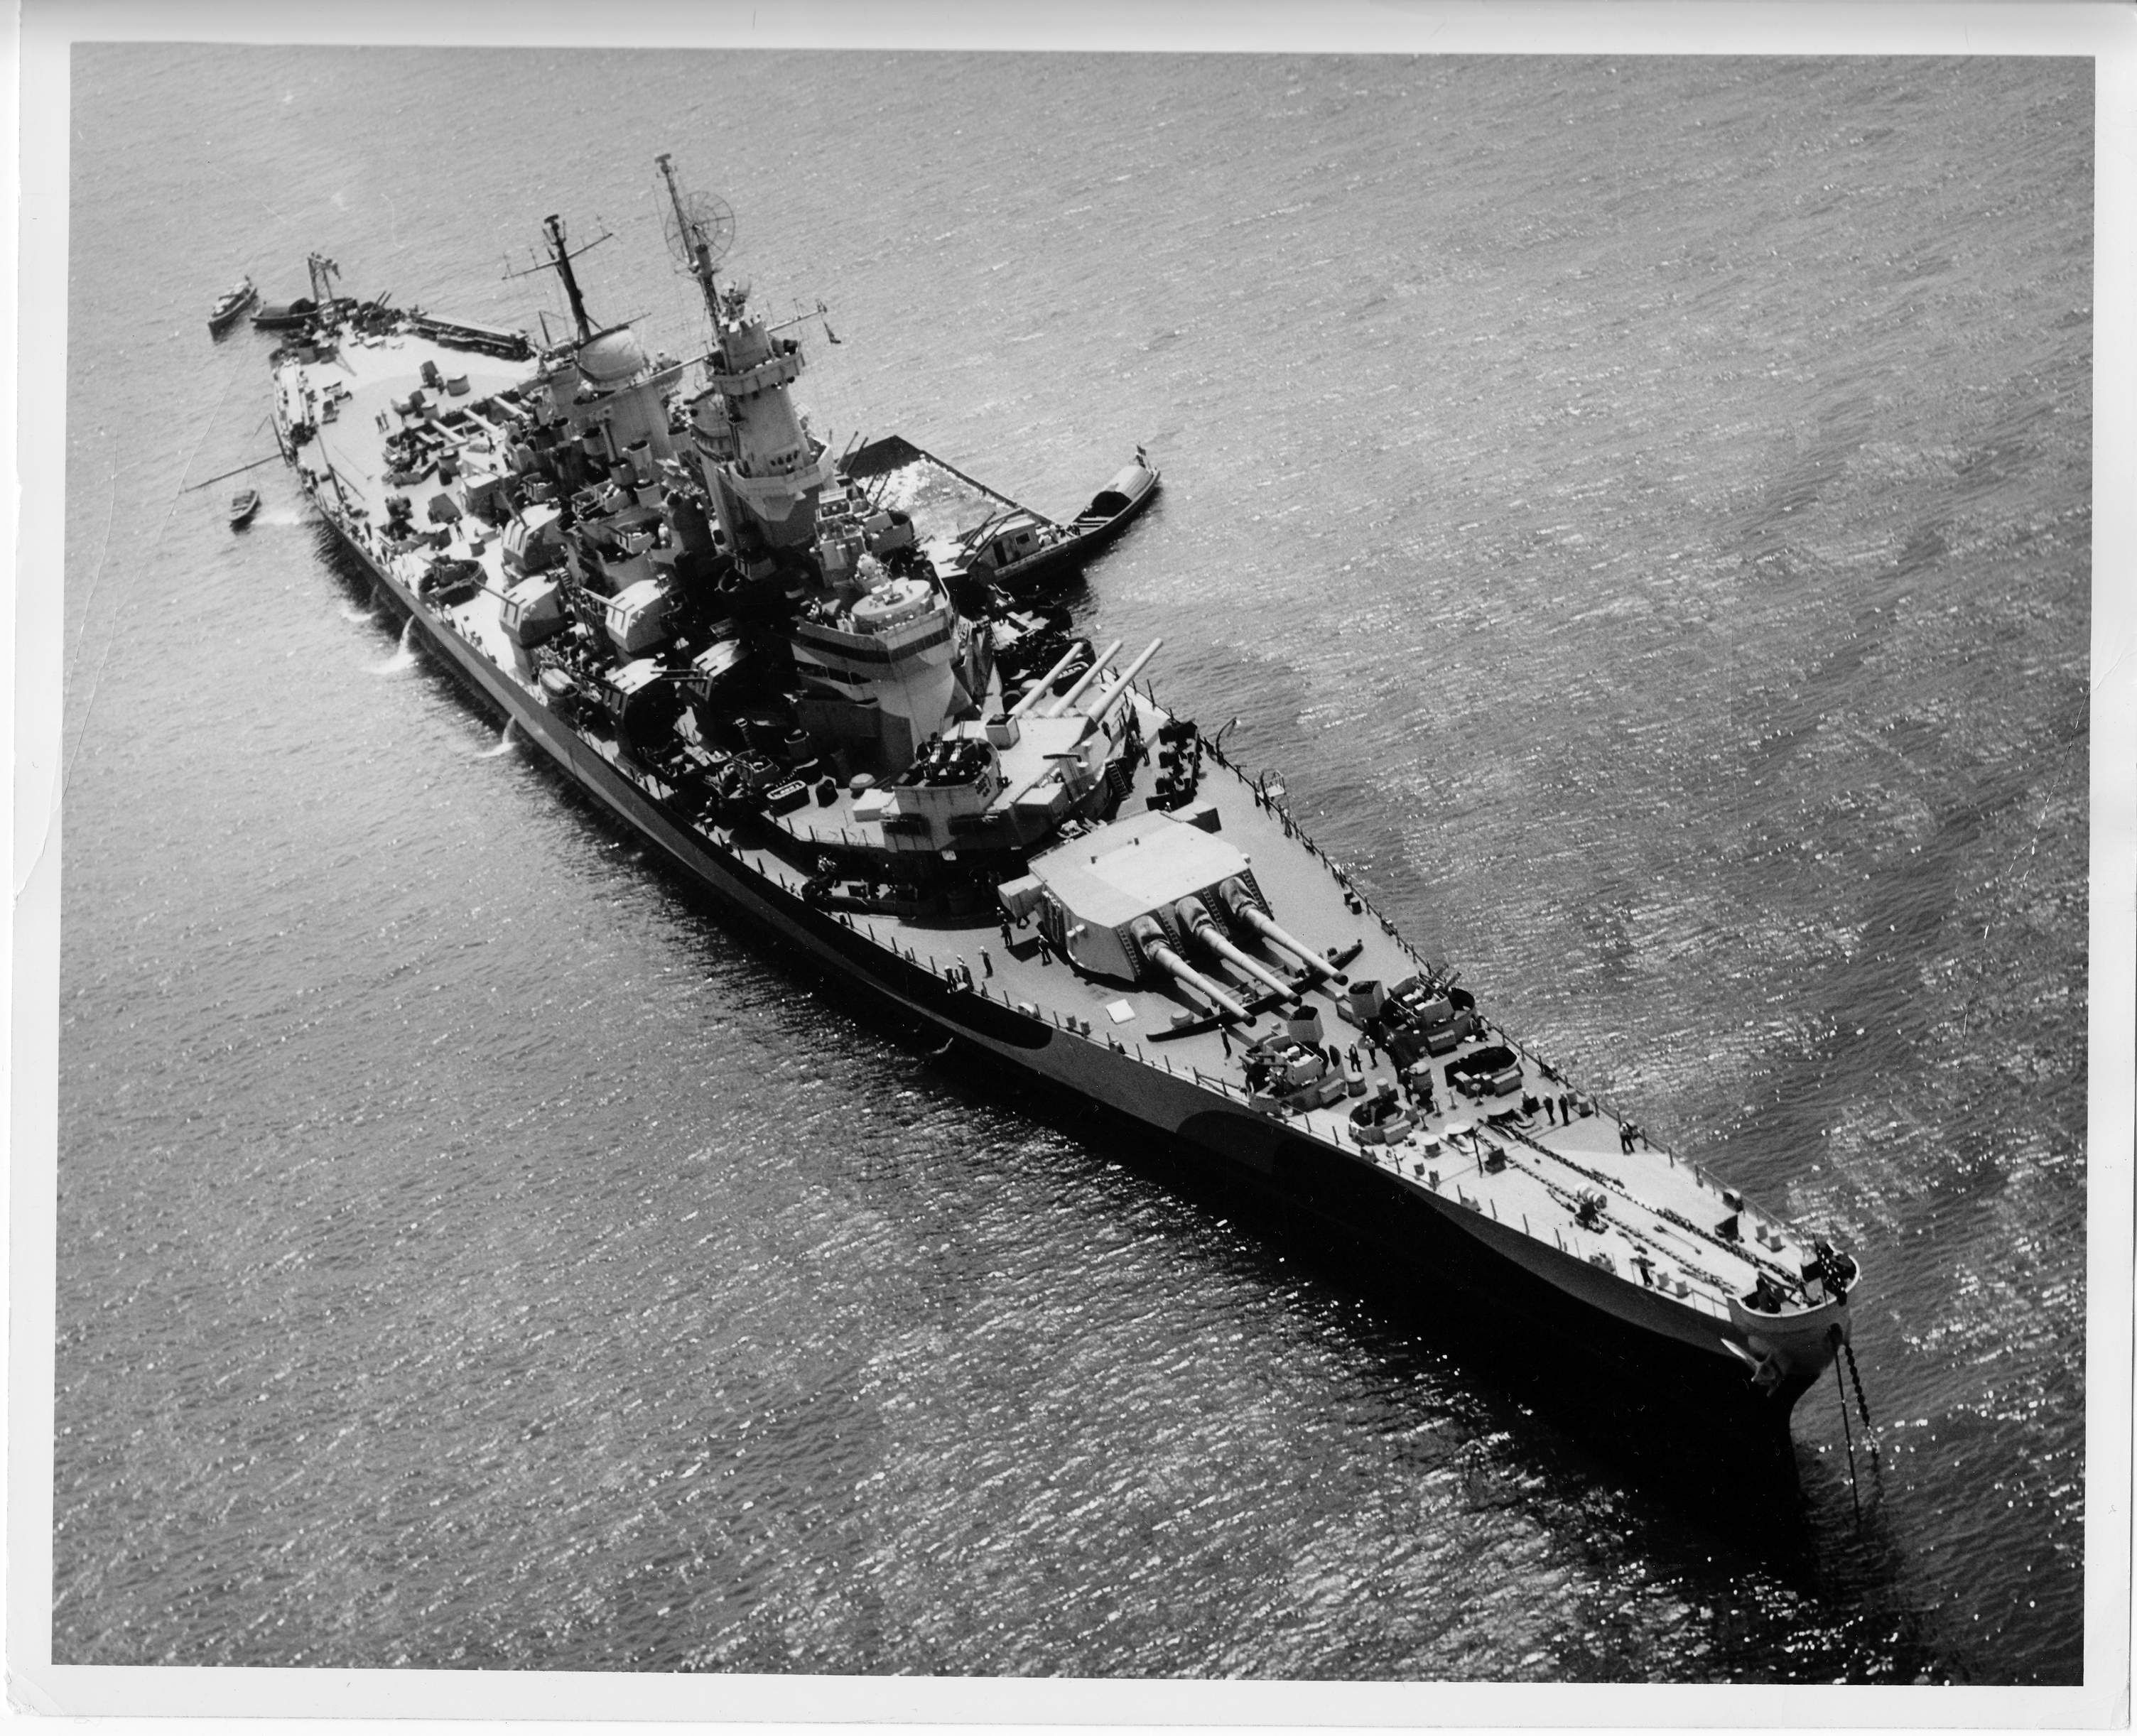 The Iowa was designed as a Fleet Flagship, like the South Dakota (BB-57). The Iowa was completed with a 20mm gun array on #2 turret so as not to block the view of the flag bridge, located below the conning bridge station.